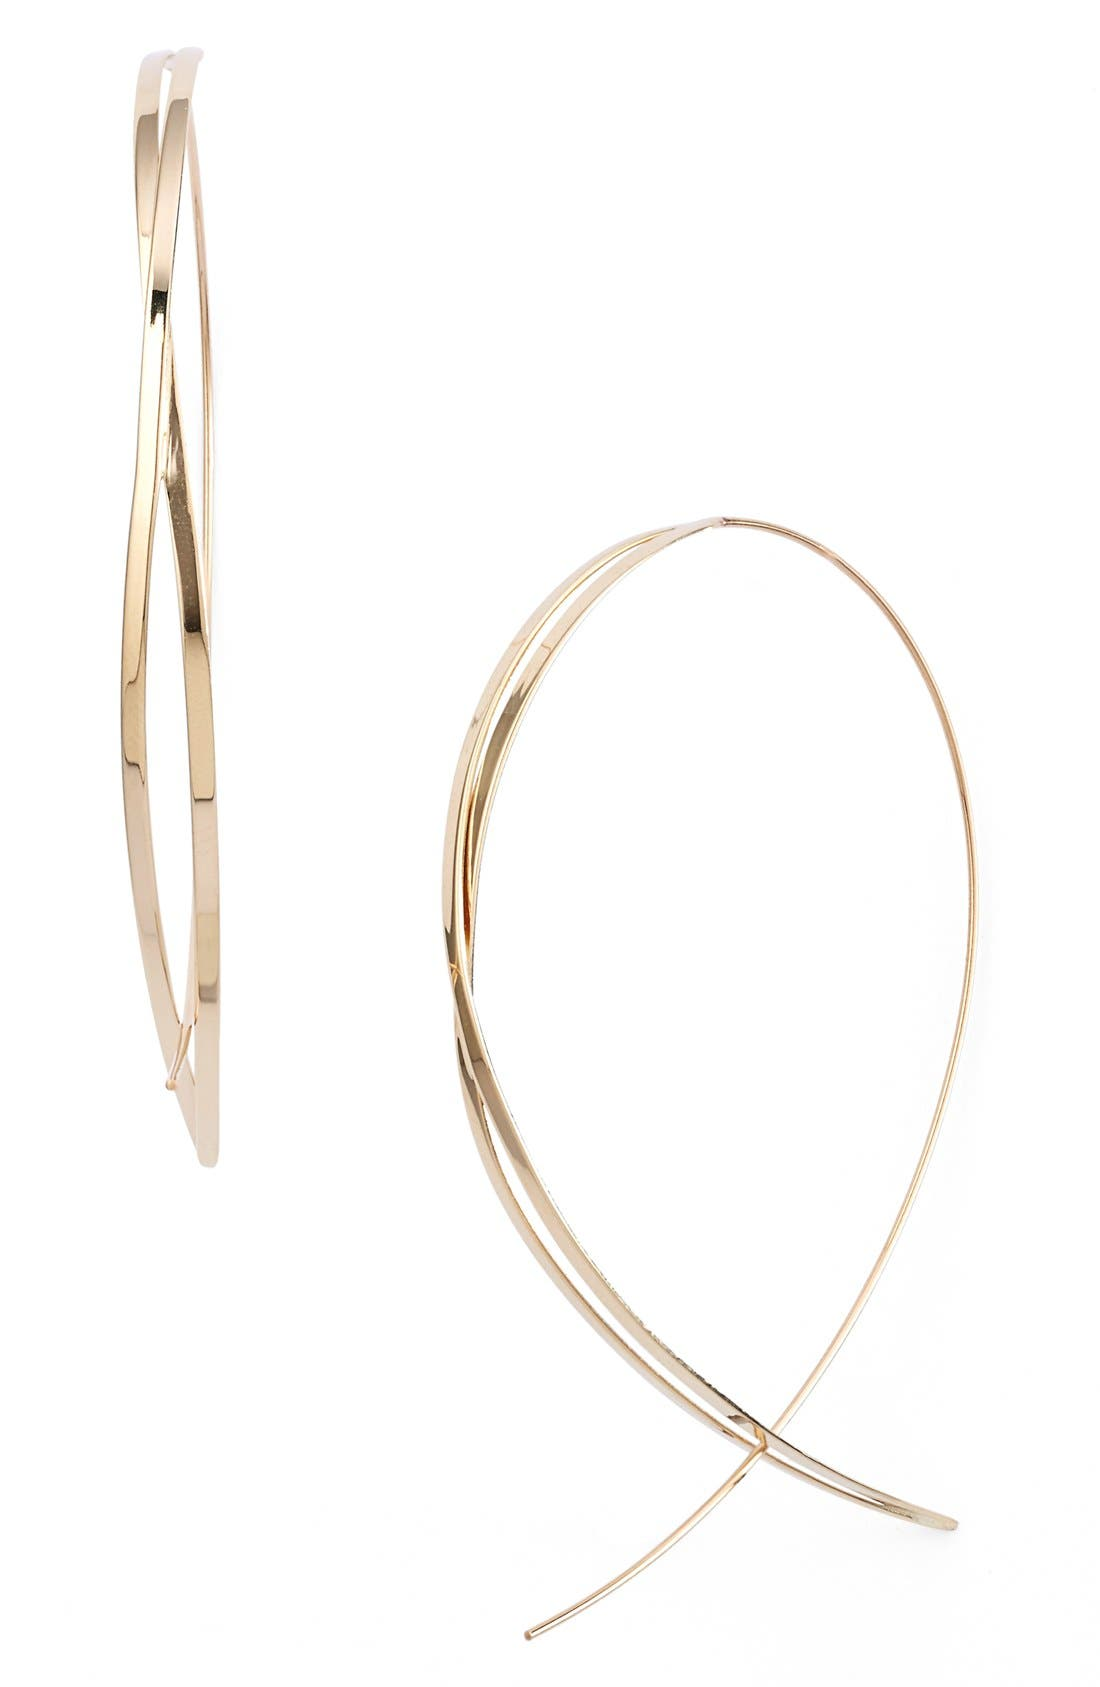 Alternate Image 1 Selected - Lana Jewelry 'Twist Upside Down' Large Hoop Earrings